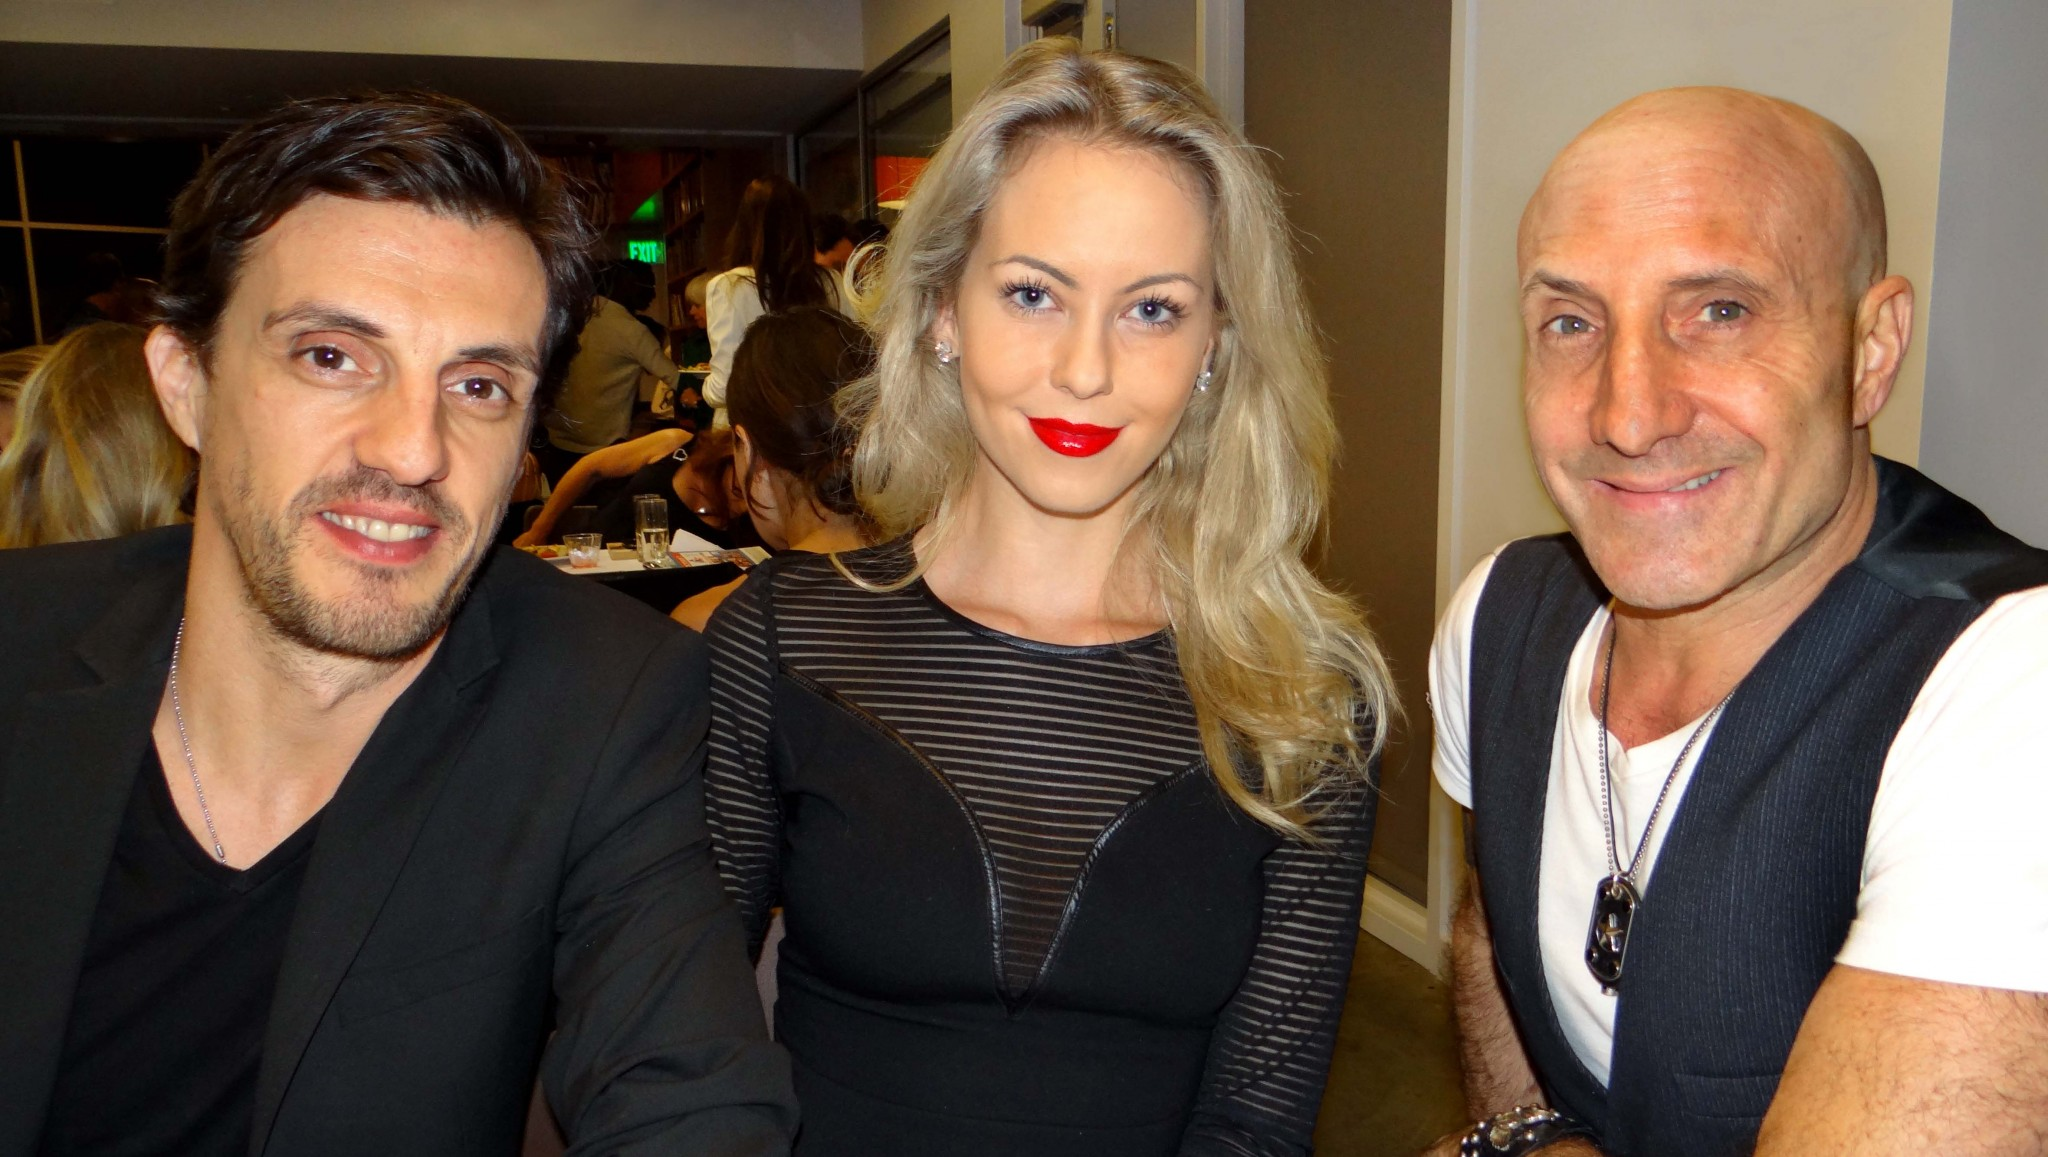 Actor Ian Fisher, Model Katherine Kohl Thorbak and Drummer Kenny Aronoff at the Bring Hollywood Home Network Concert Celebration dinner.